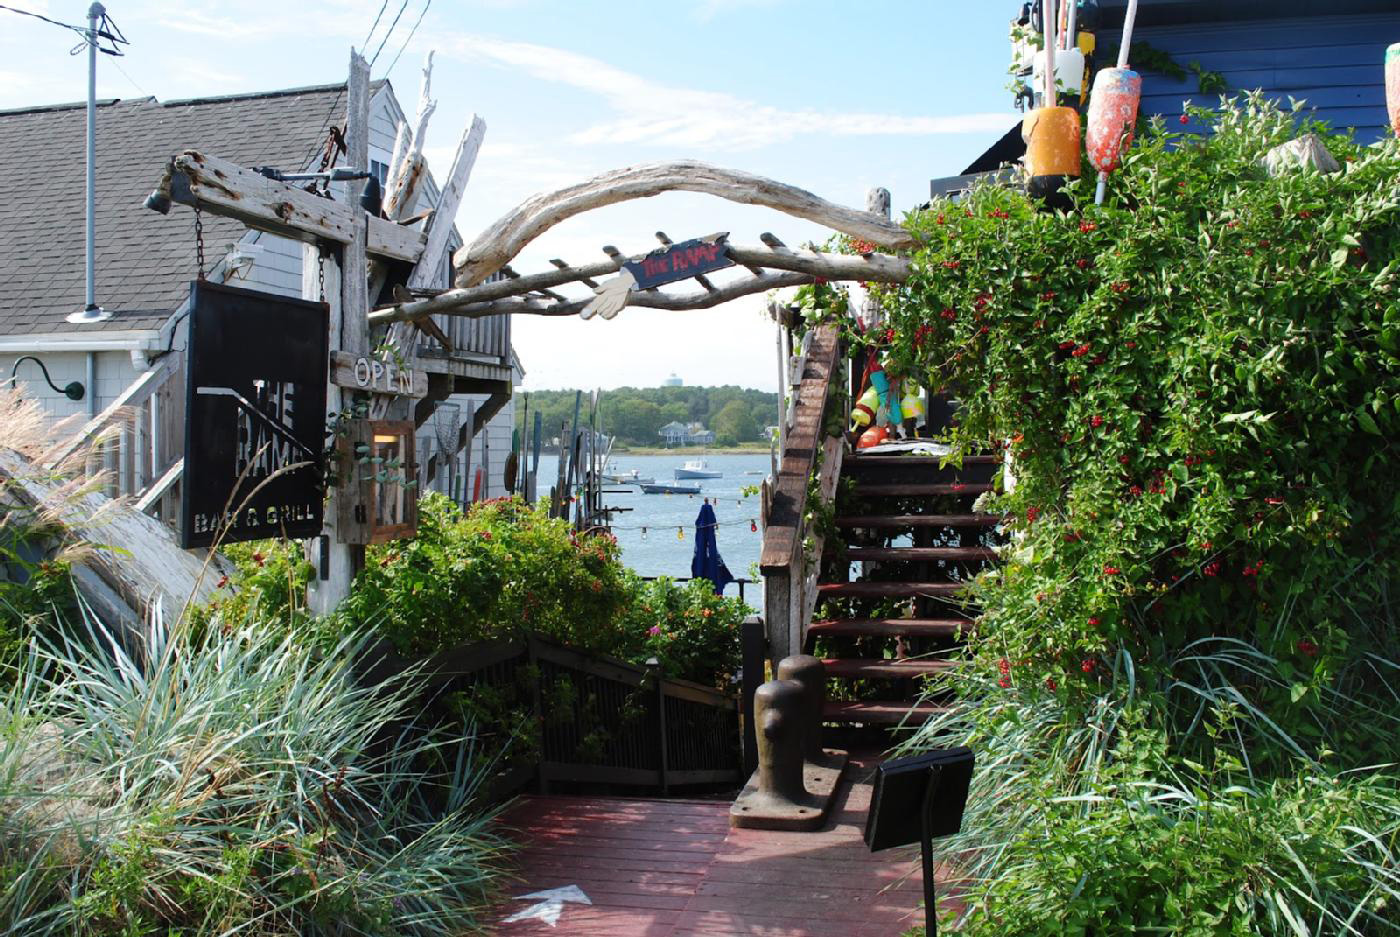 Pier 77 Restaurant / The Ramp Bar & Grill offers sweeping views of Cape Porpoise Harbor, both from its upstairs dining room and the waterfront patio below